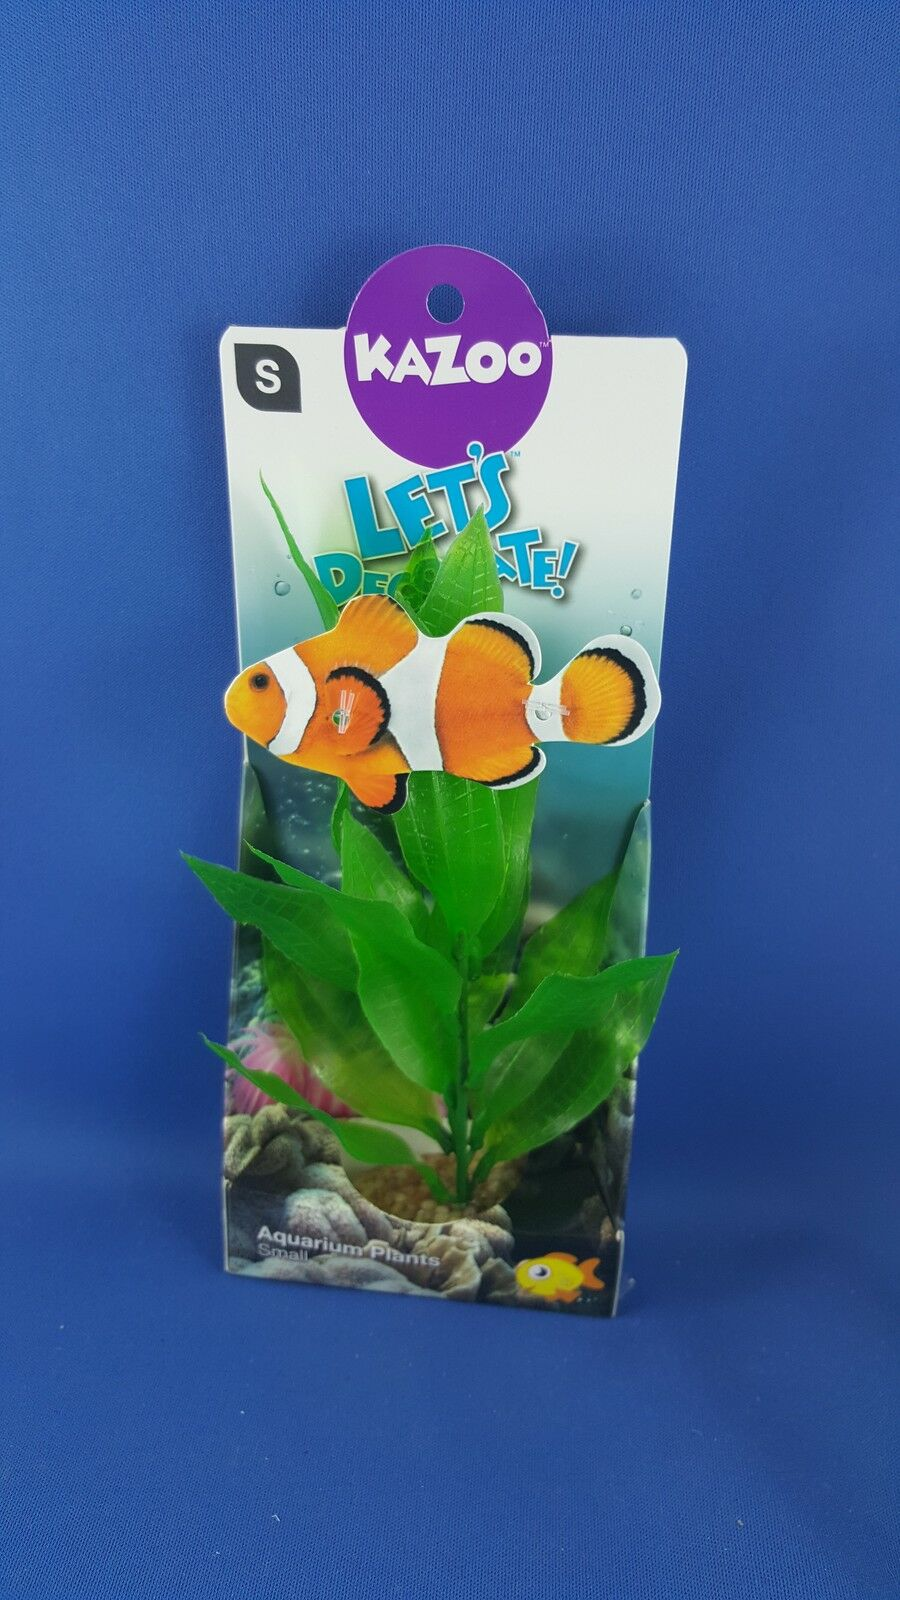 Kazoo aquarium plant, small with large green leaves with solid pebble base